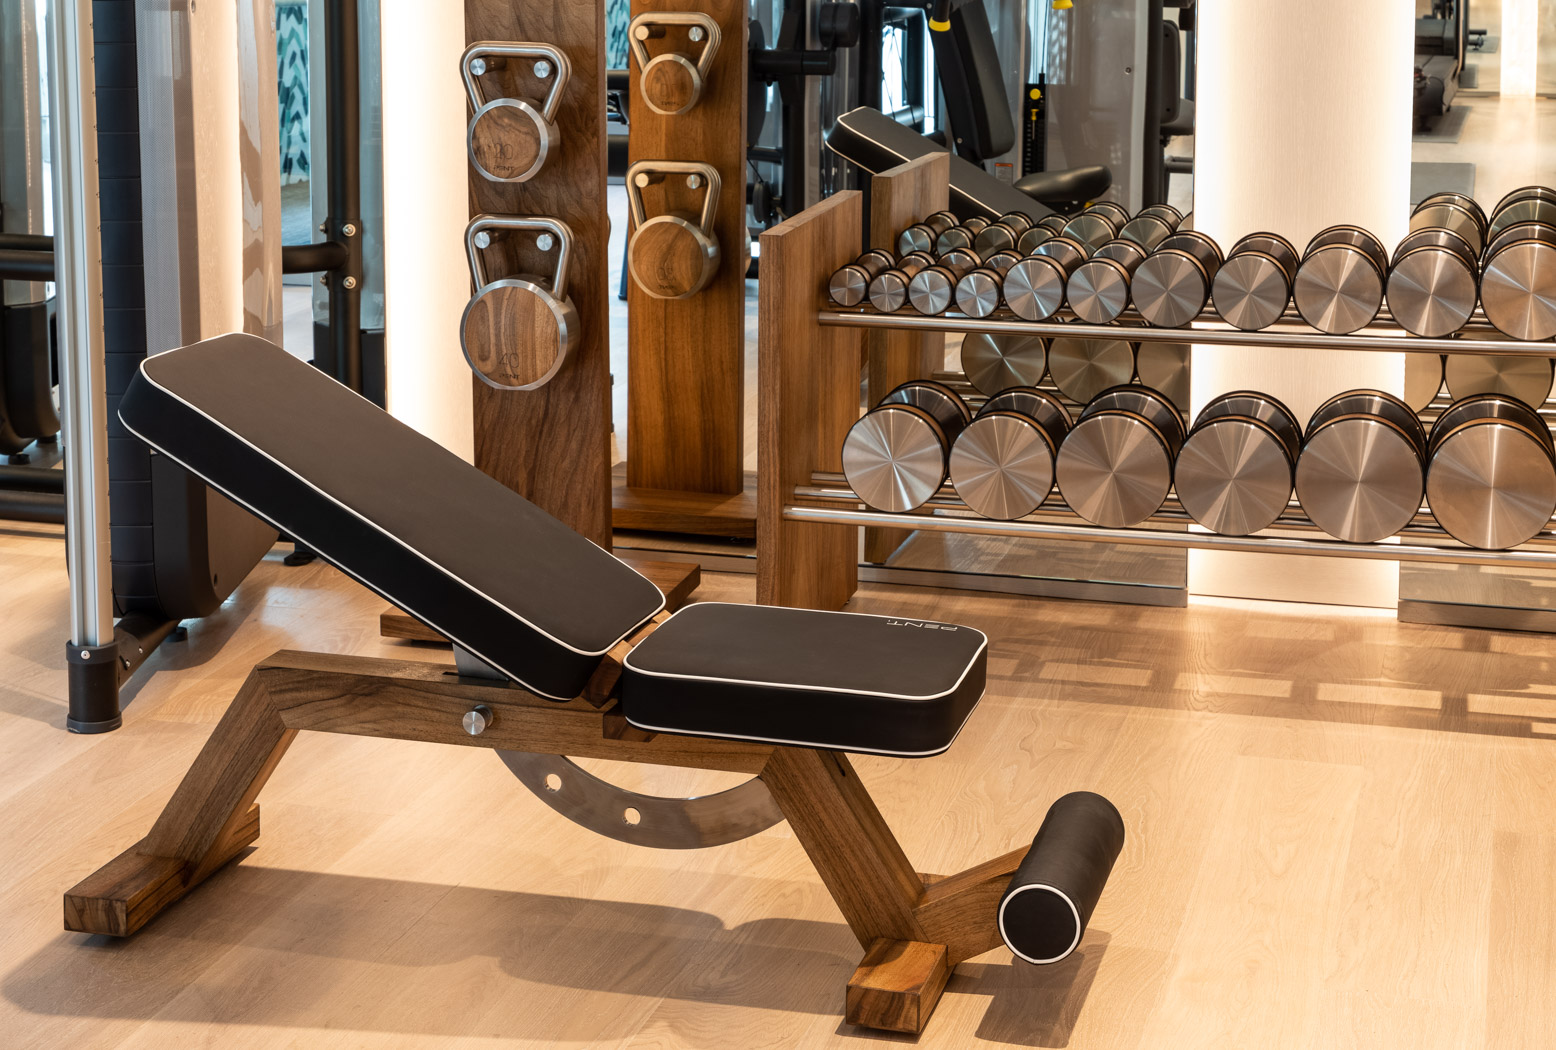 a gym with a bench and silver dumbbells